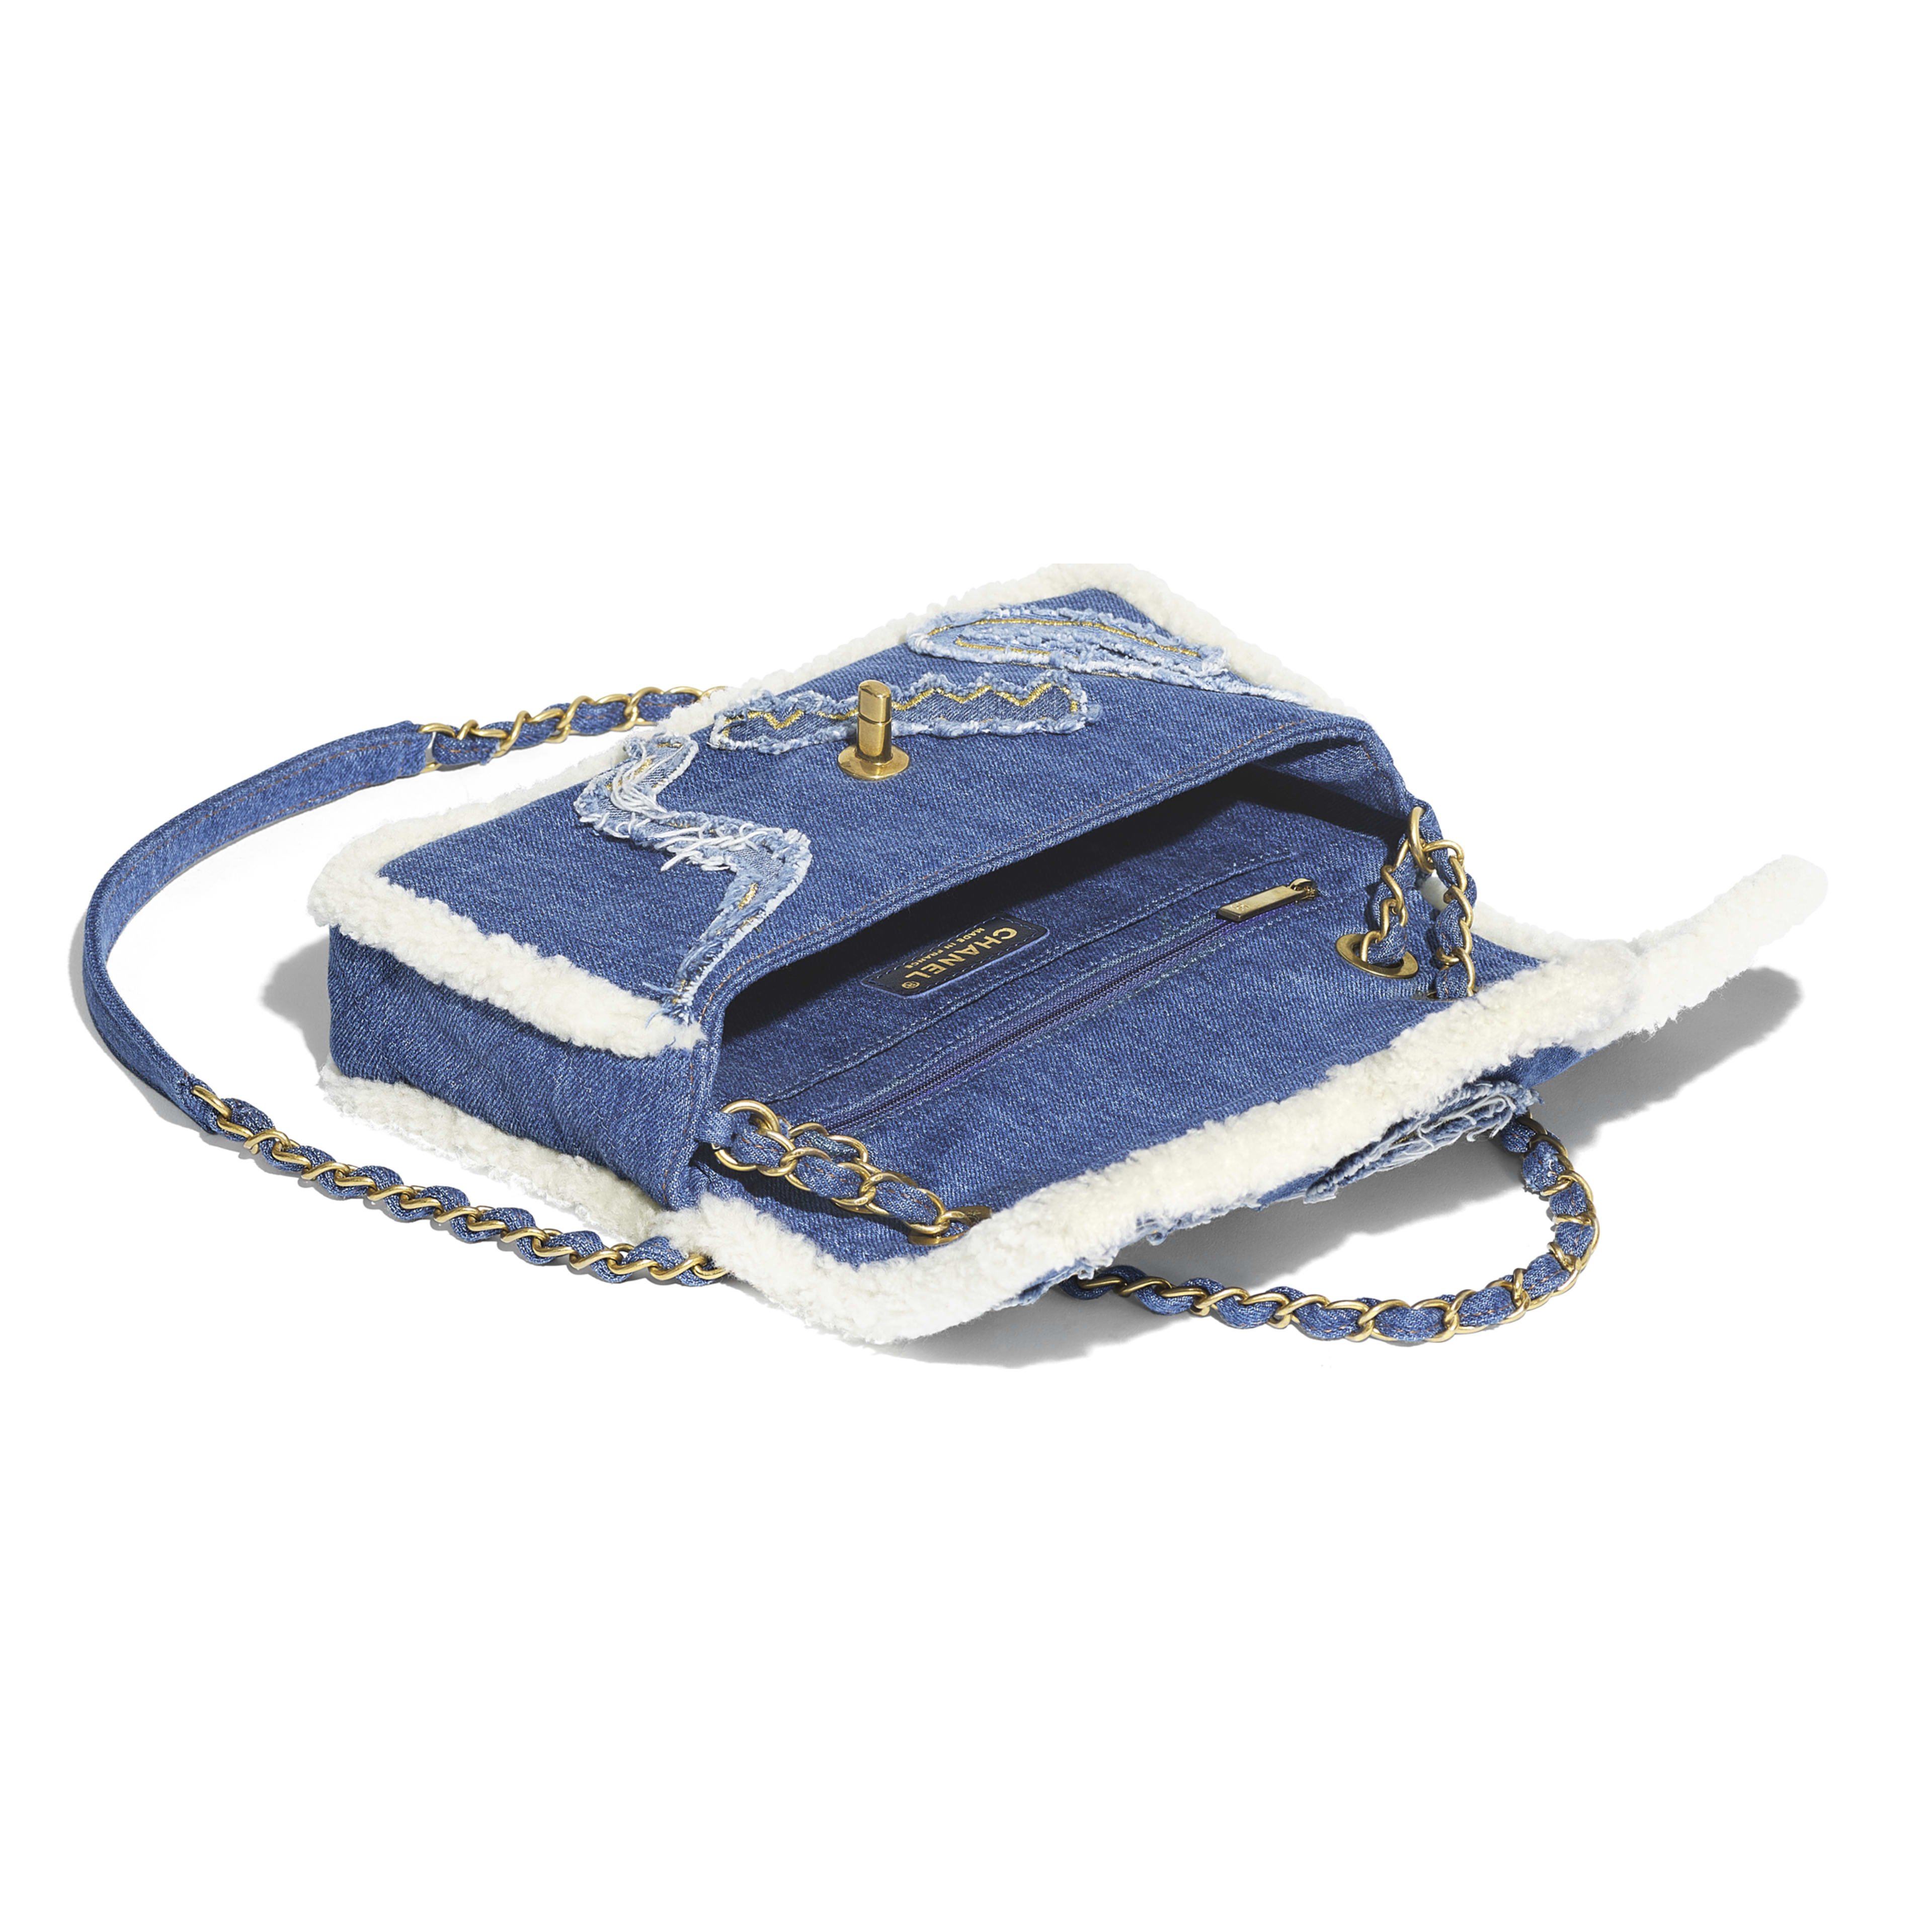 Flap Bag - Light Blue - Cotton, Shearling Sheepskin & Gold-Tone Metal - Other view - see full sized version